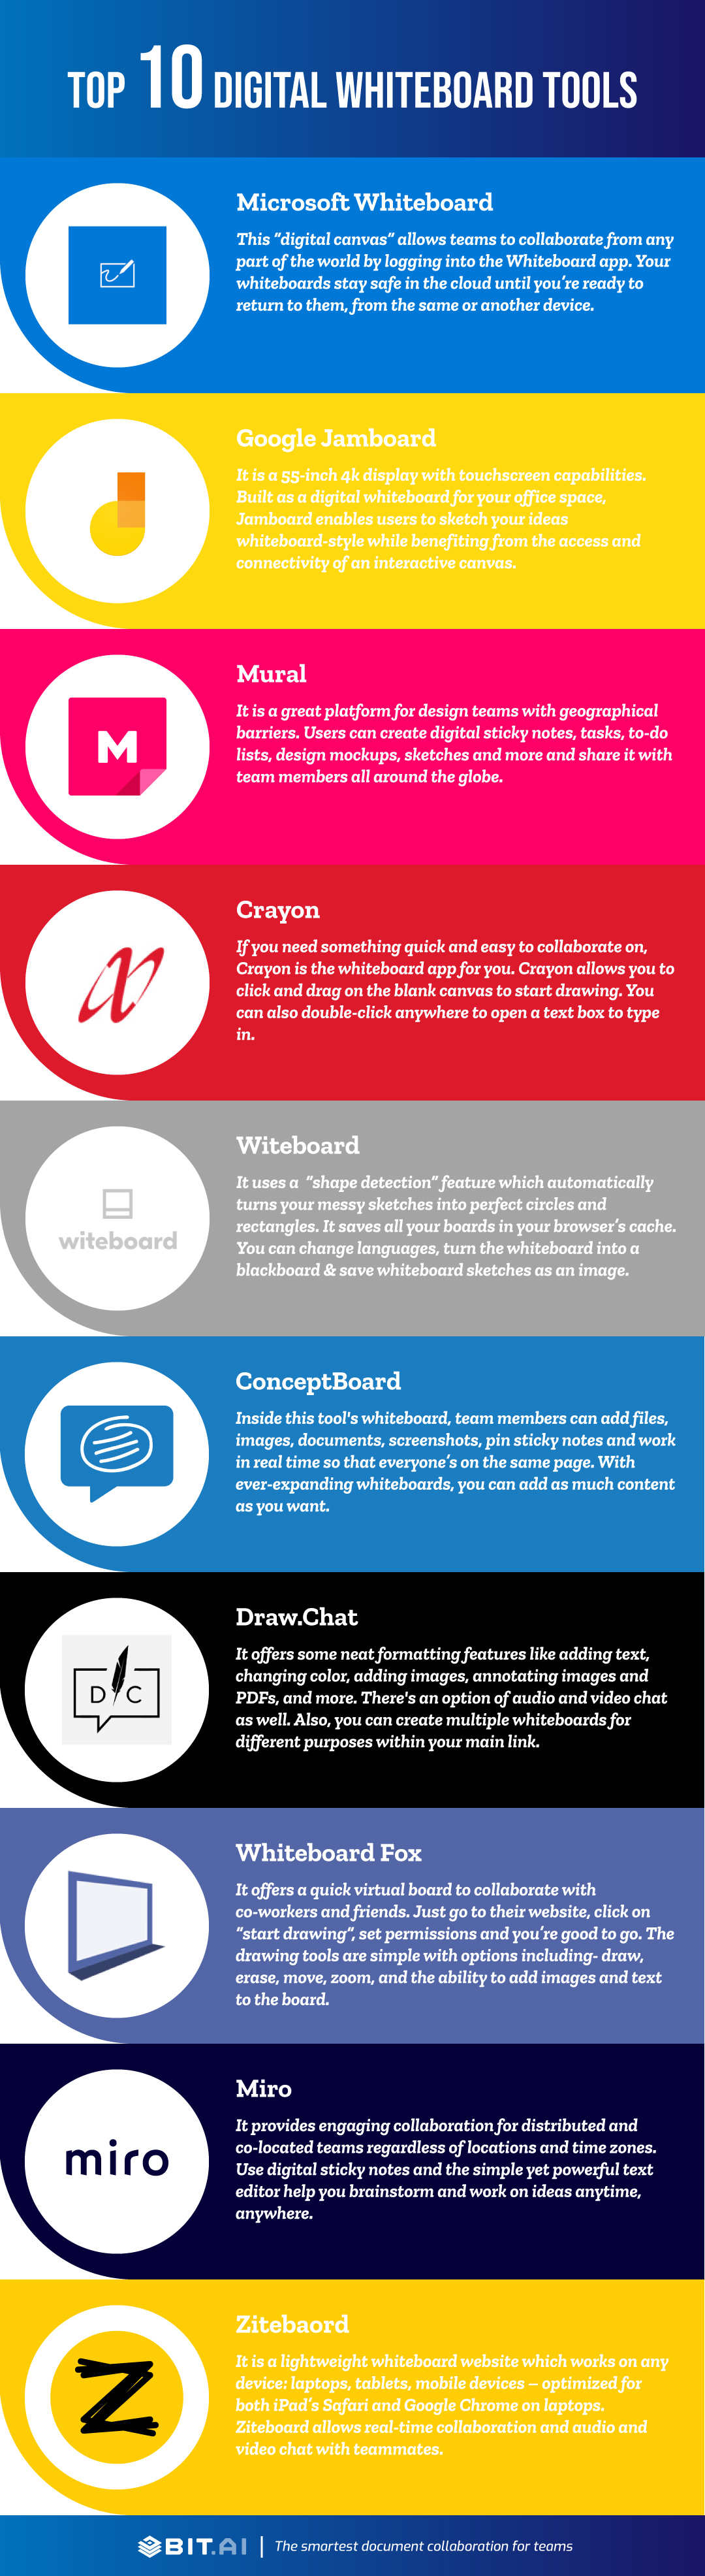 Digital whiteboard software infographic